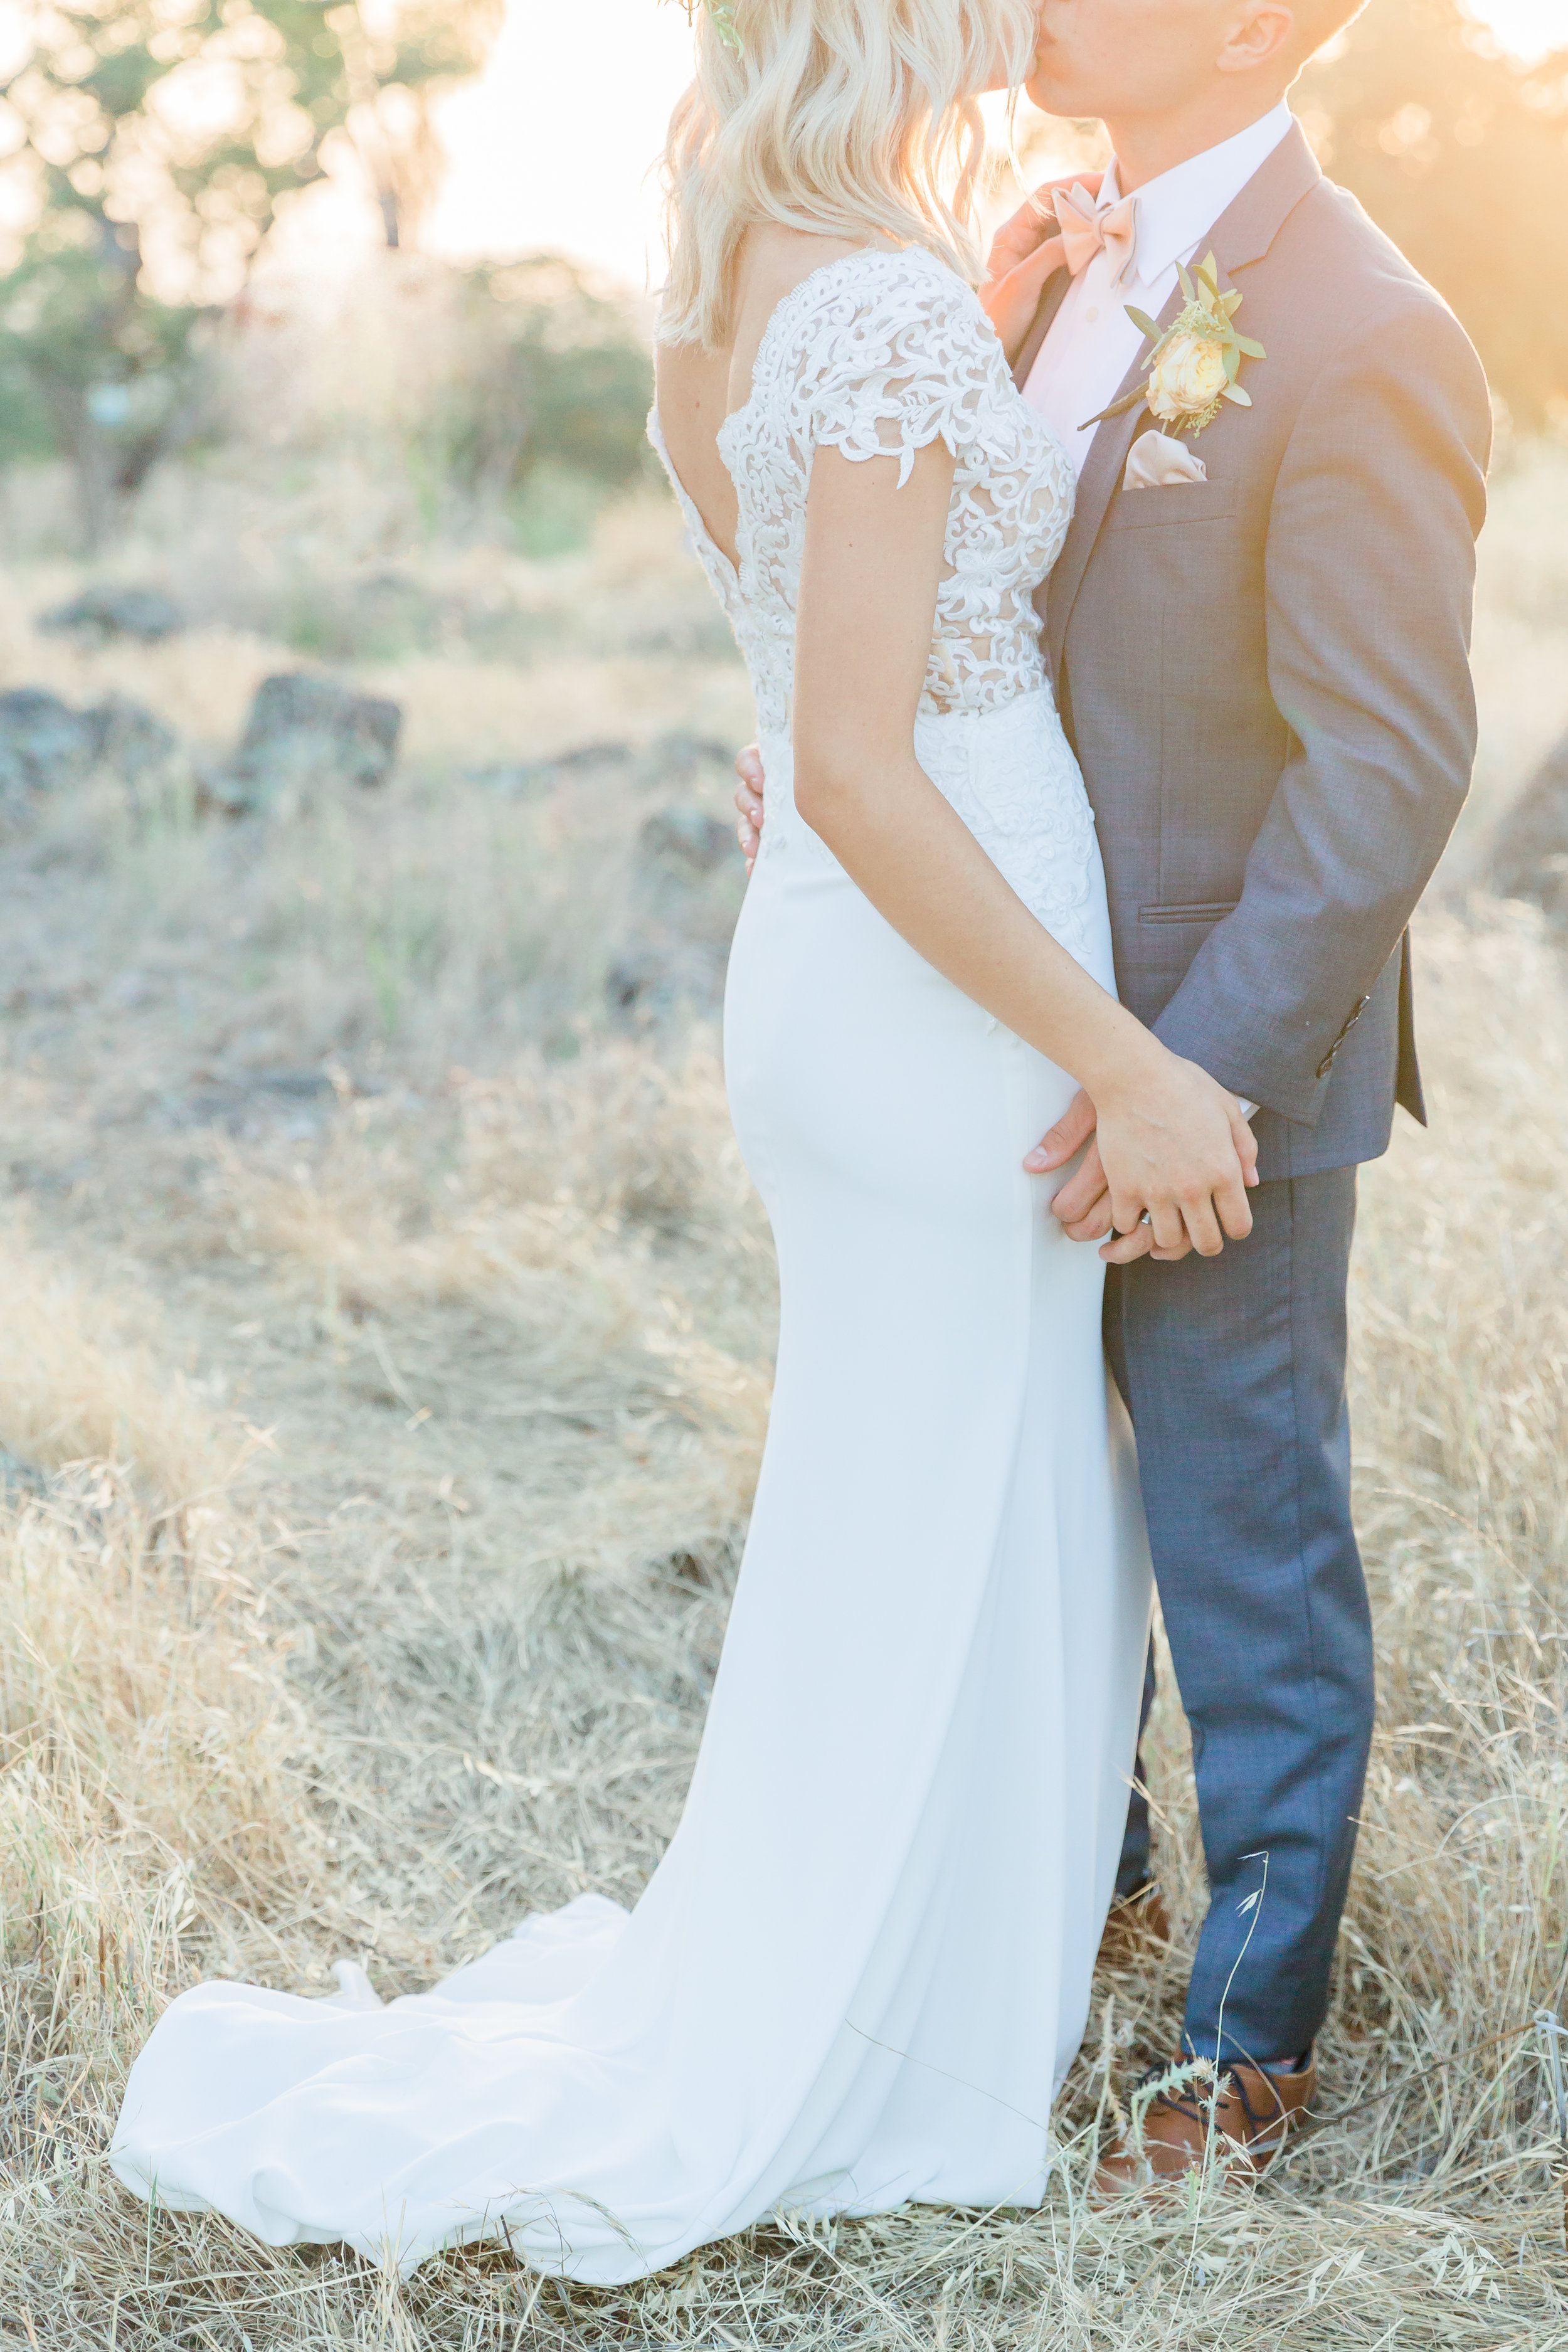 Kaitlynn and Colby - Married - Sneaks - Lauren Alisse Photography-102.jpg